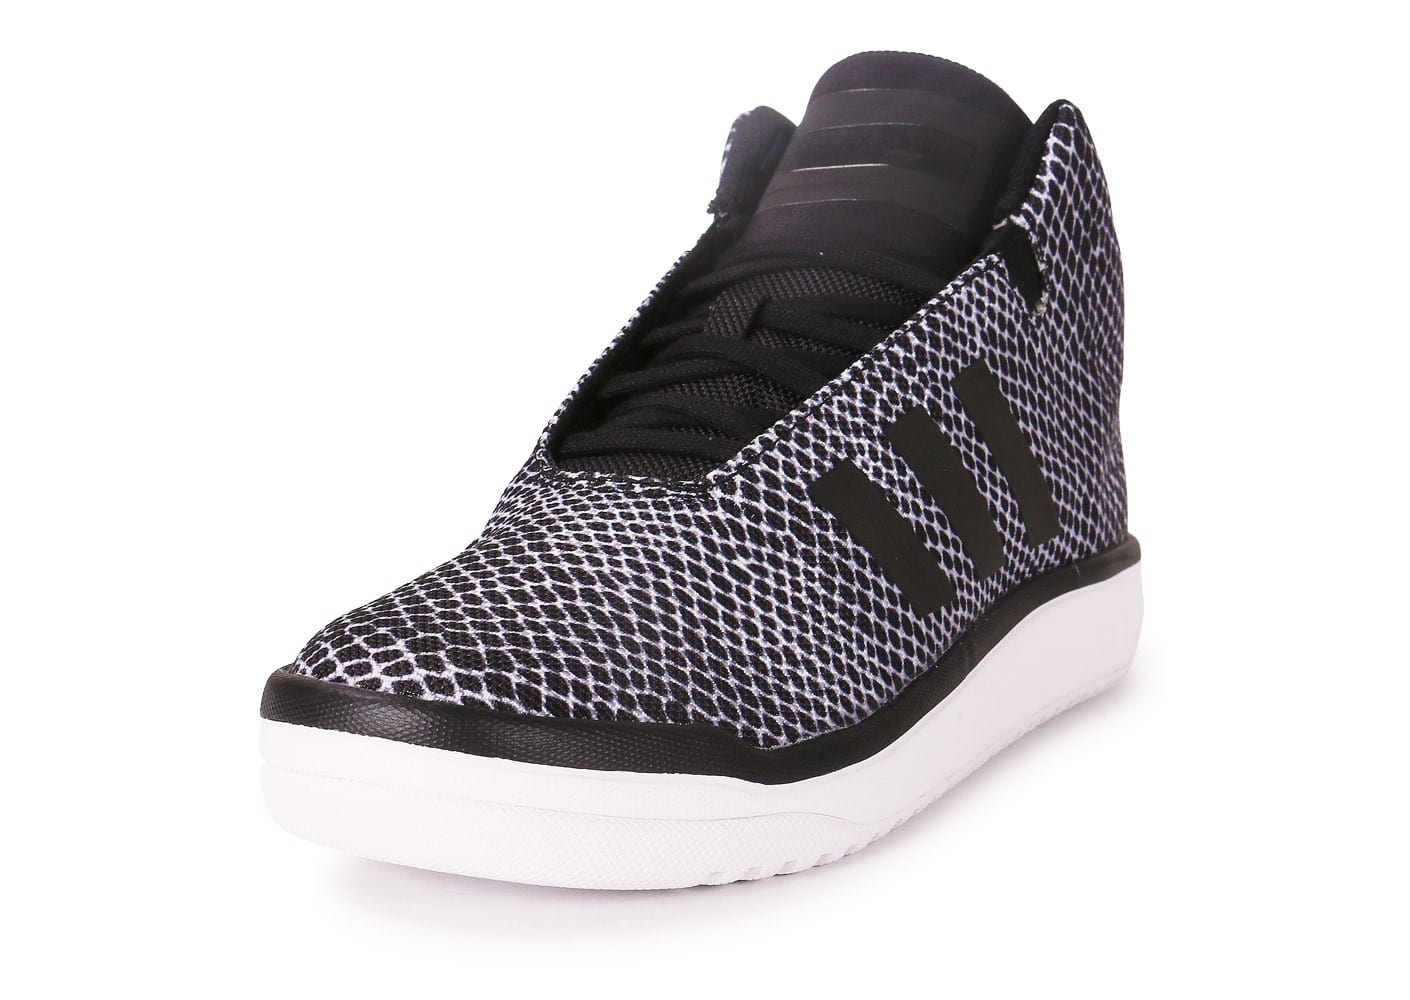 adidas veritas mid noir et blanc chaussures adidas chausport. Black Bedroom Furniture Sets. Home Design Ideas